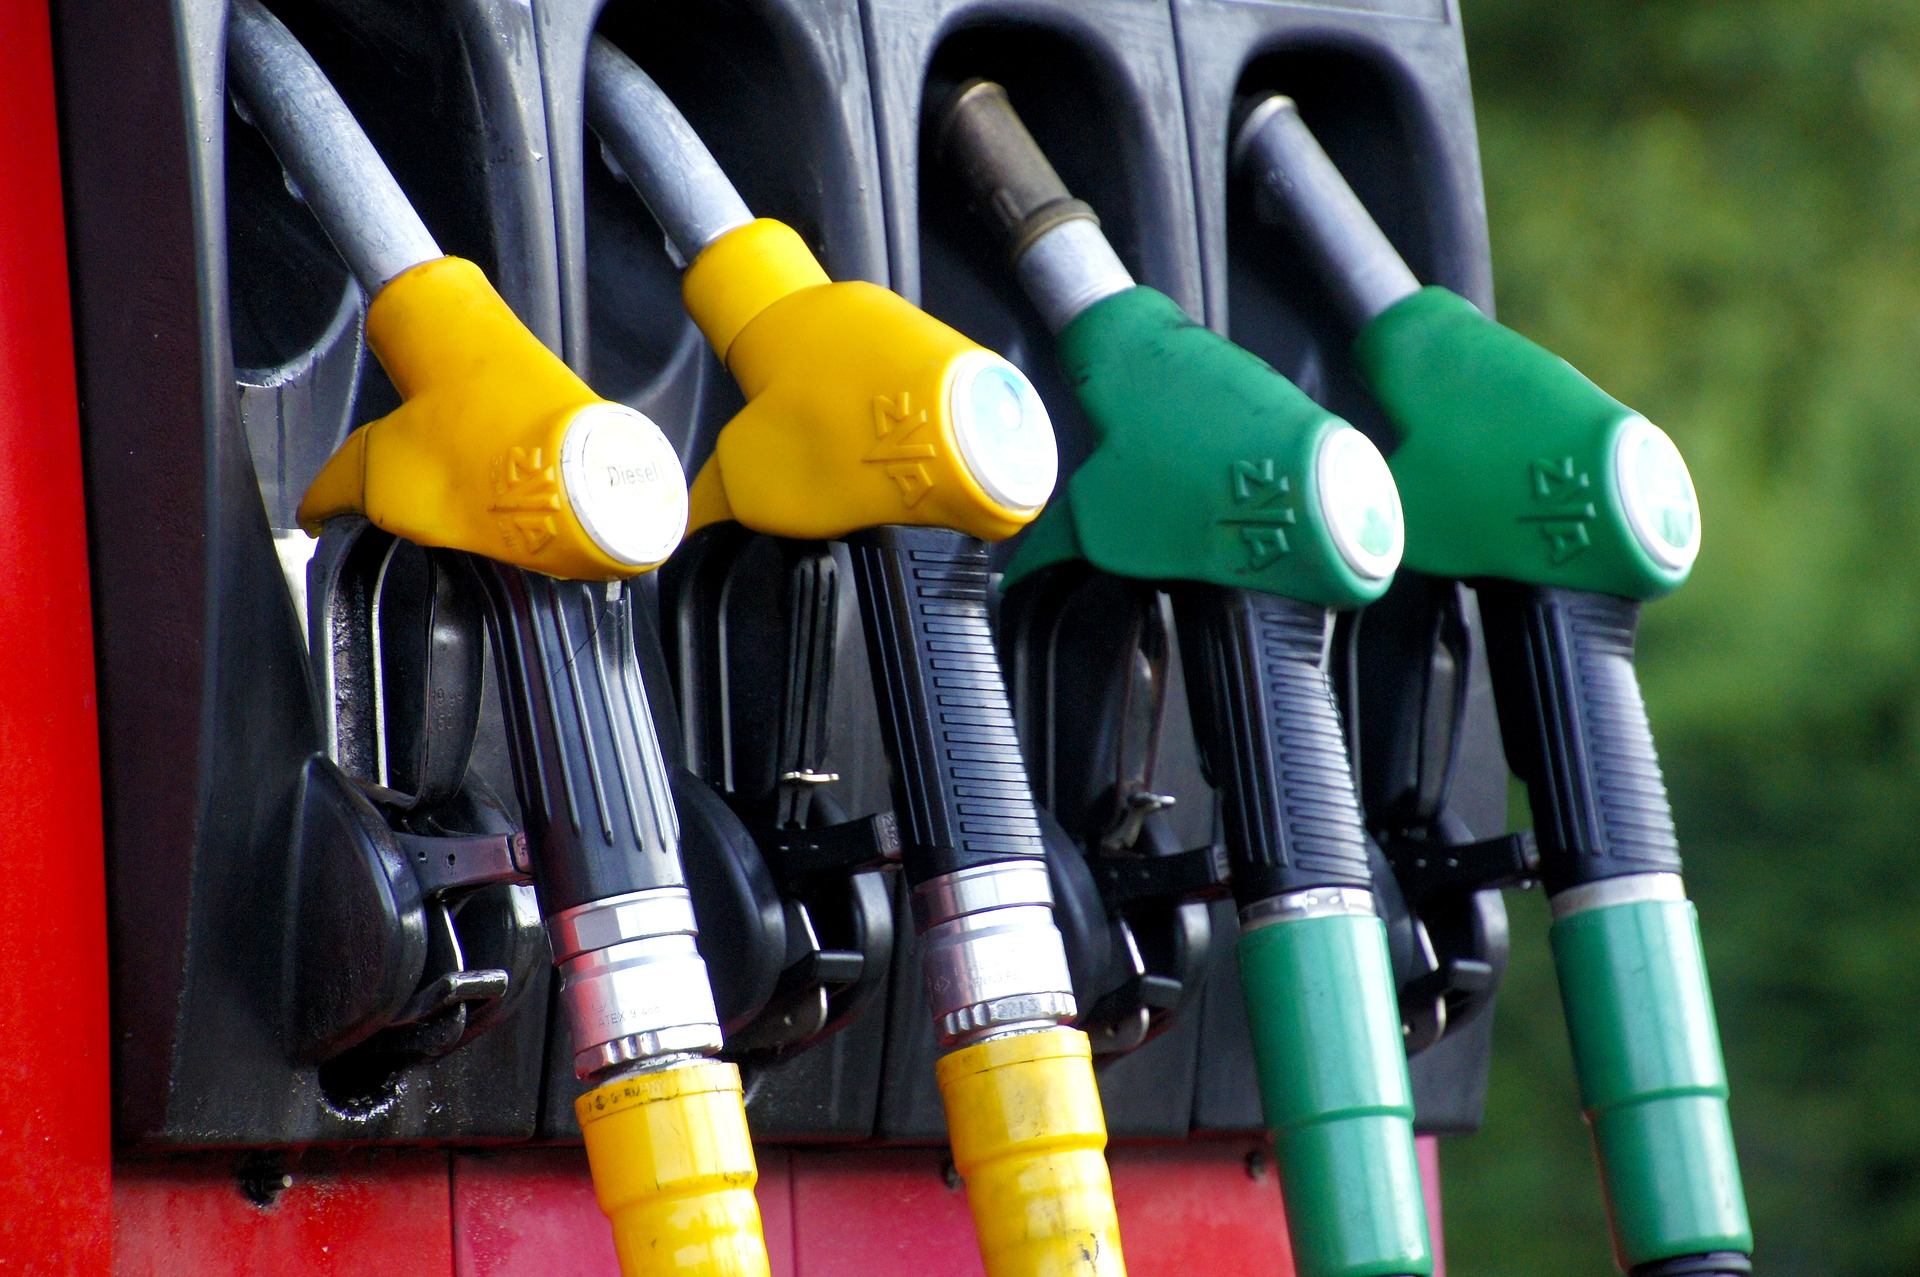 Petrol price: Highest in 3 years